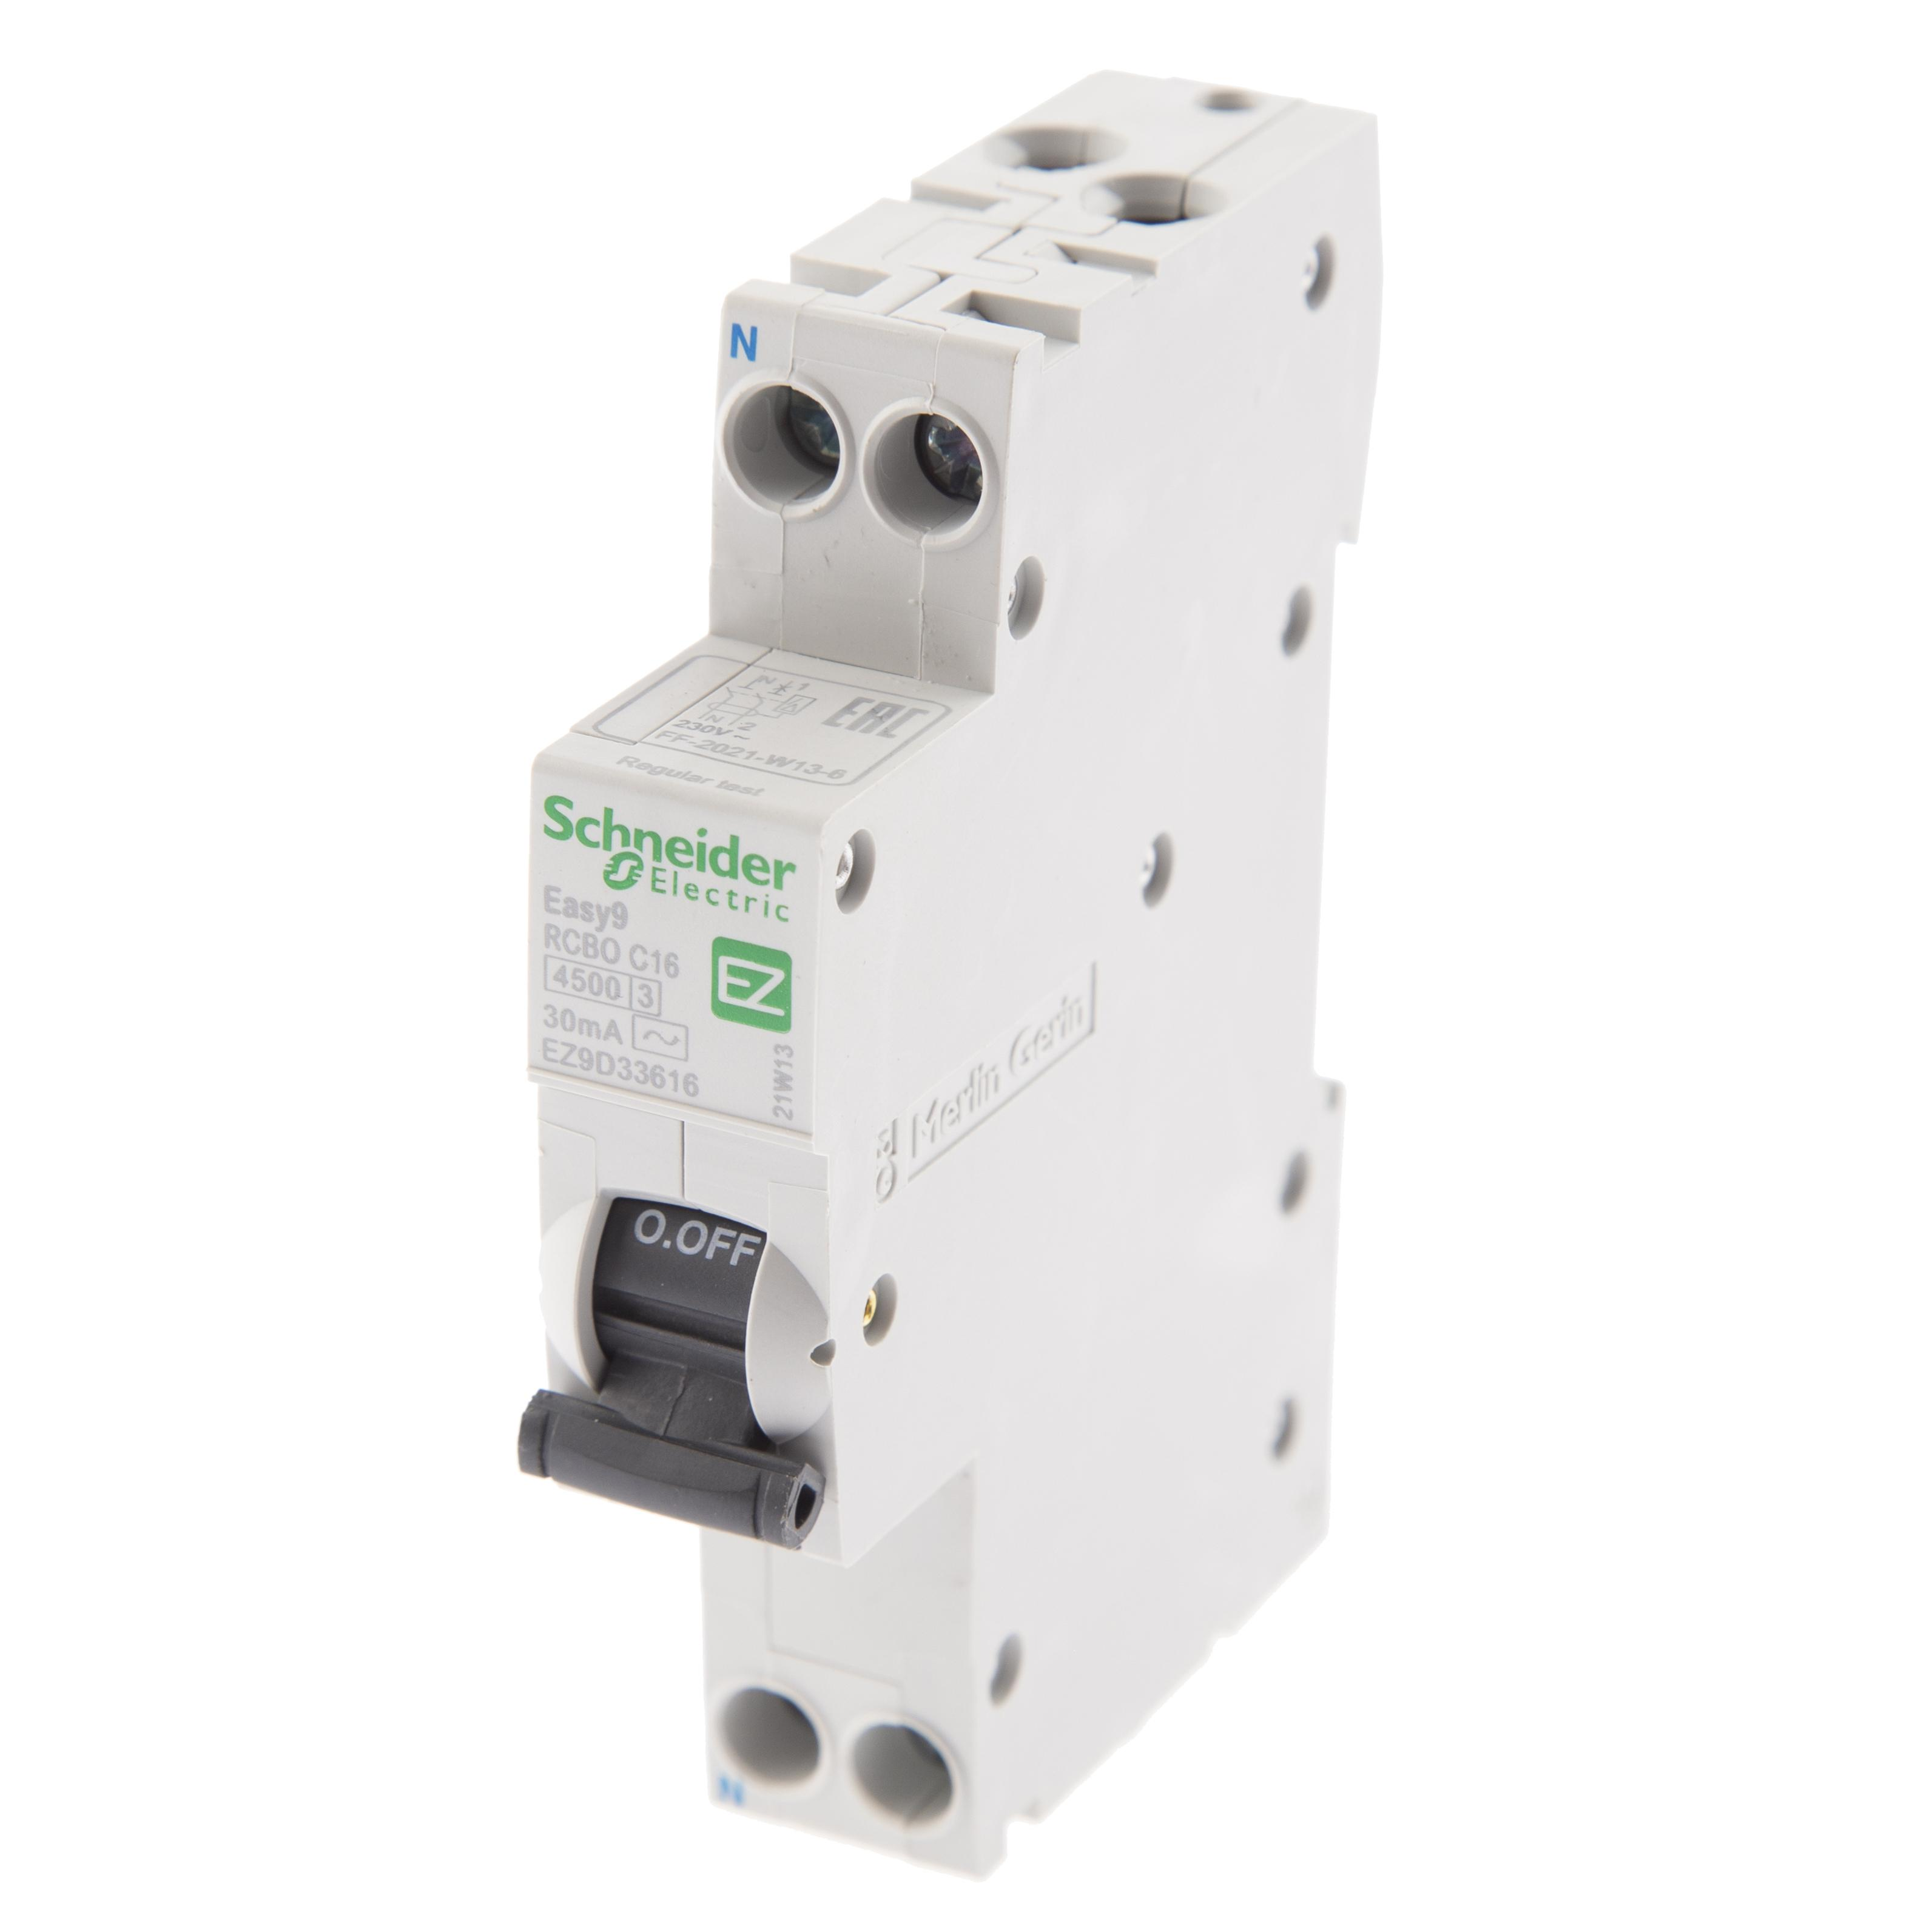 Диф. автомат Schneider electric Ez9d33616